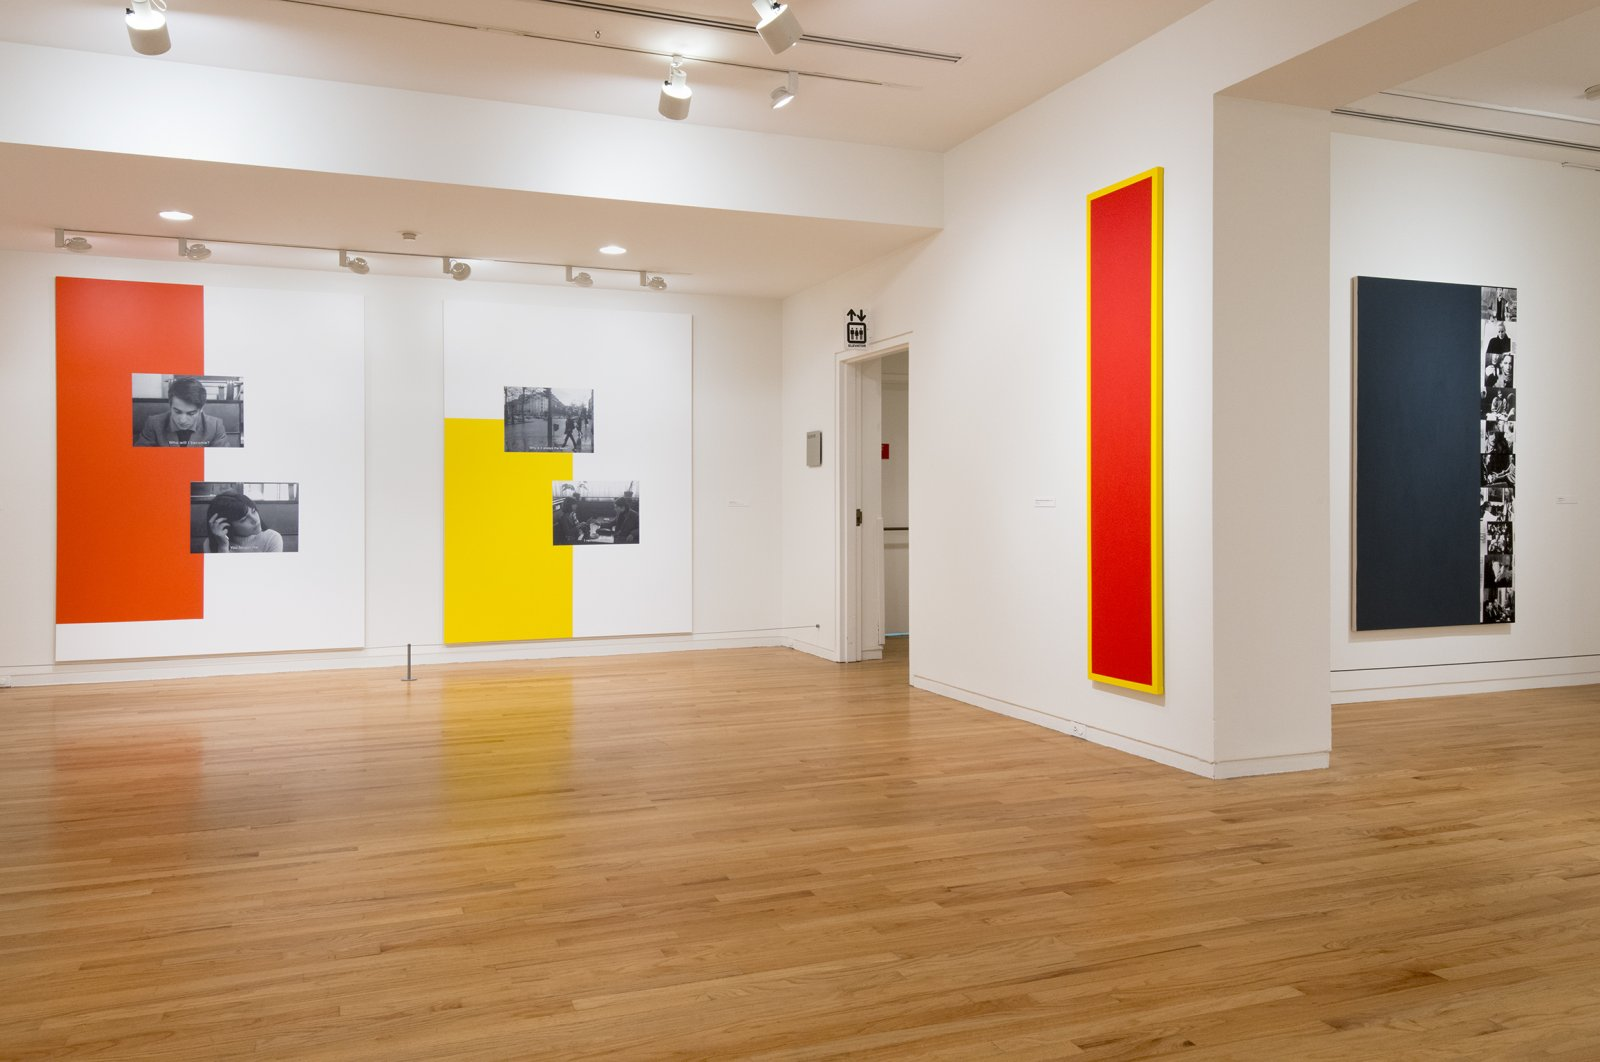 Ian Wallace, installation view, A Literature of Images, Vancouver Art Gallery, 2012 by Ian Wallace